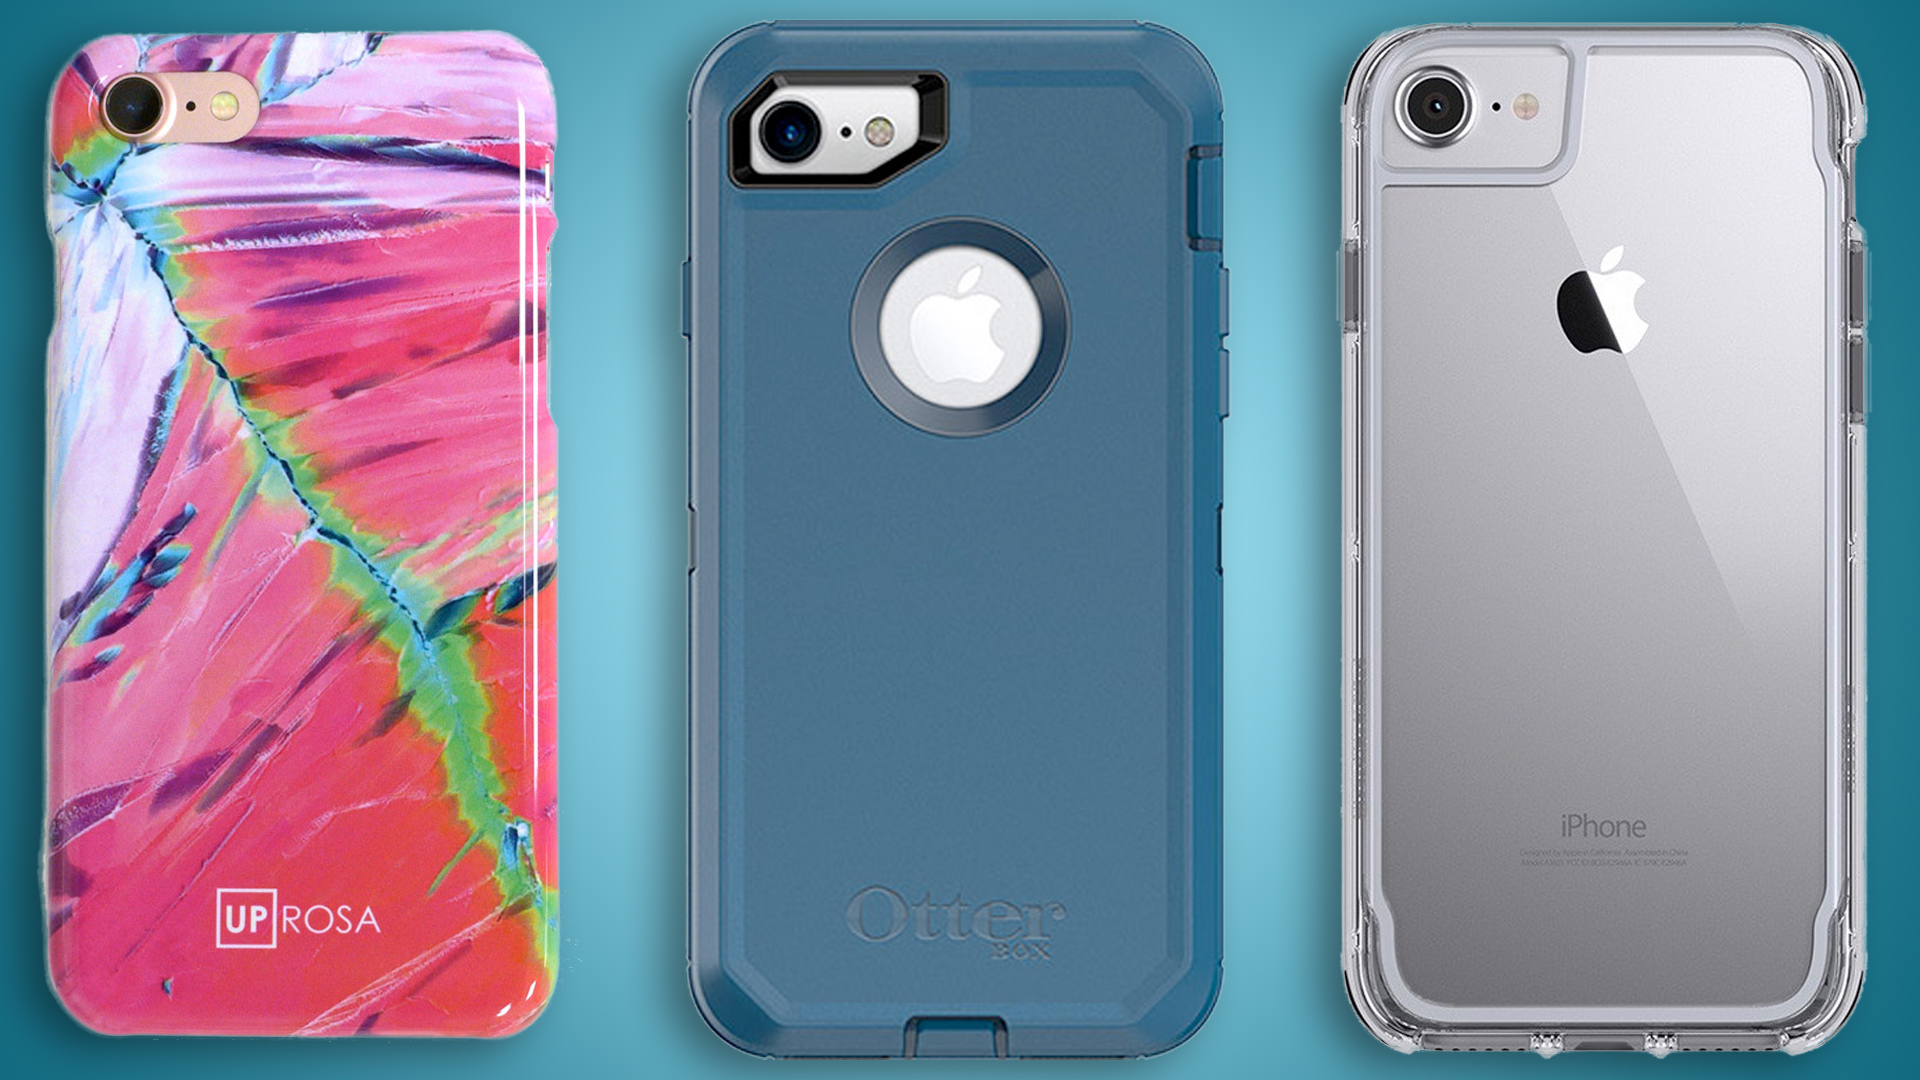 Five reasons to buy, a beautiful case for the phone